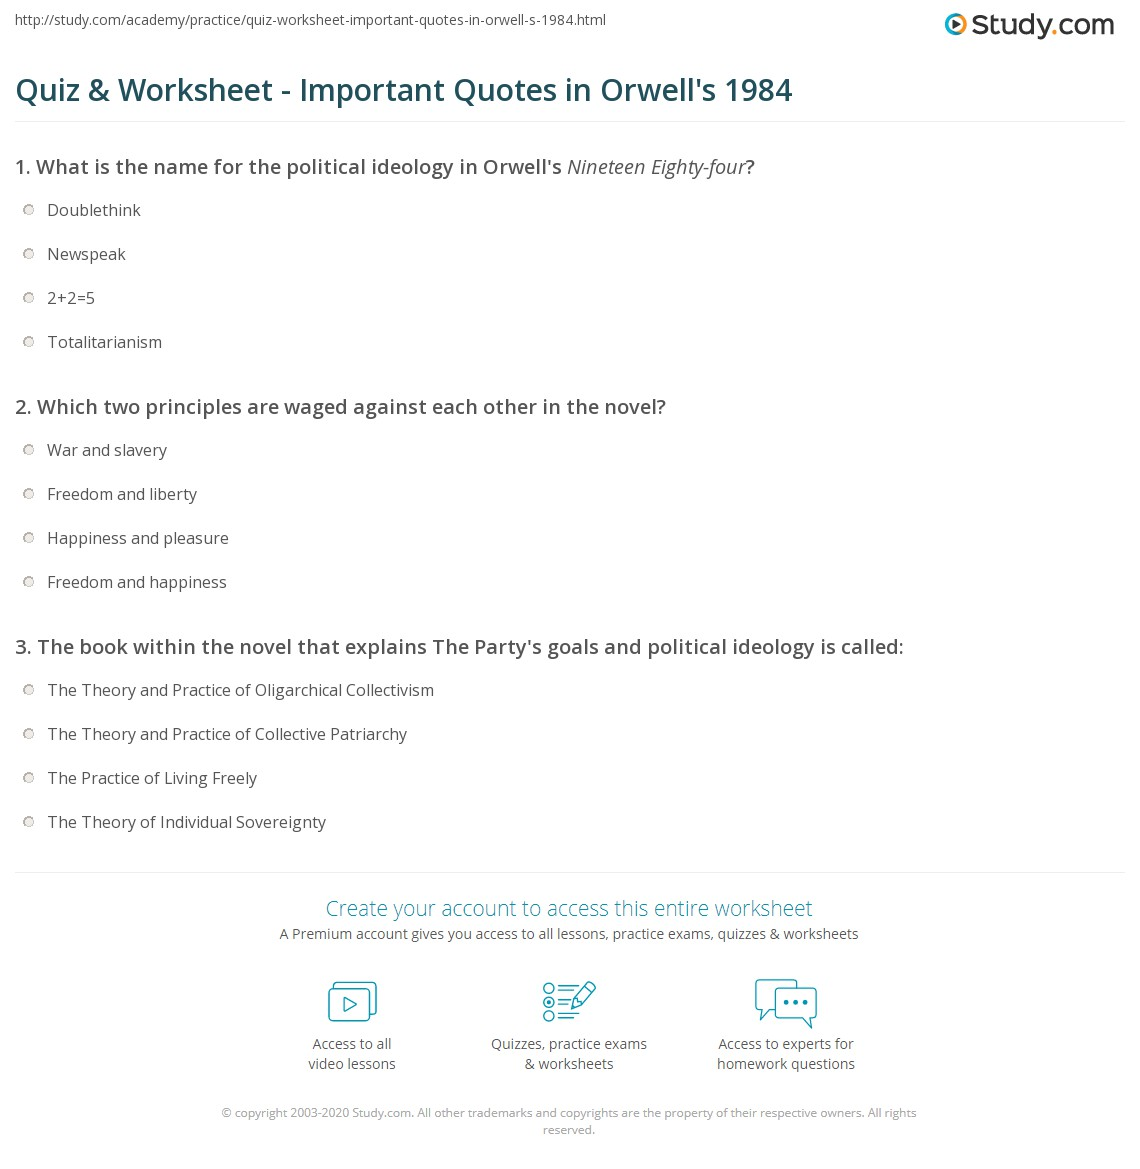 Print important quotes in 1984 worksheet